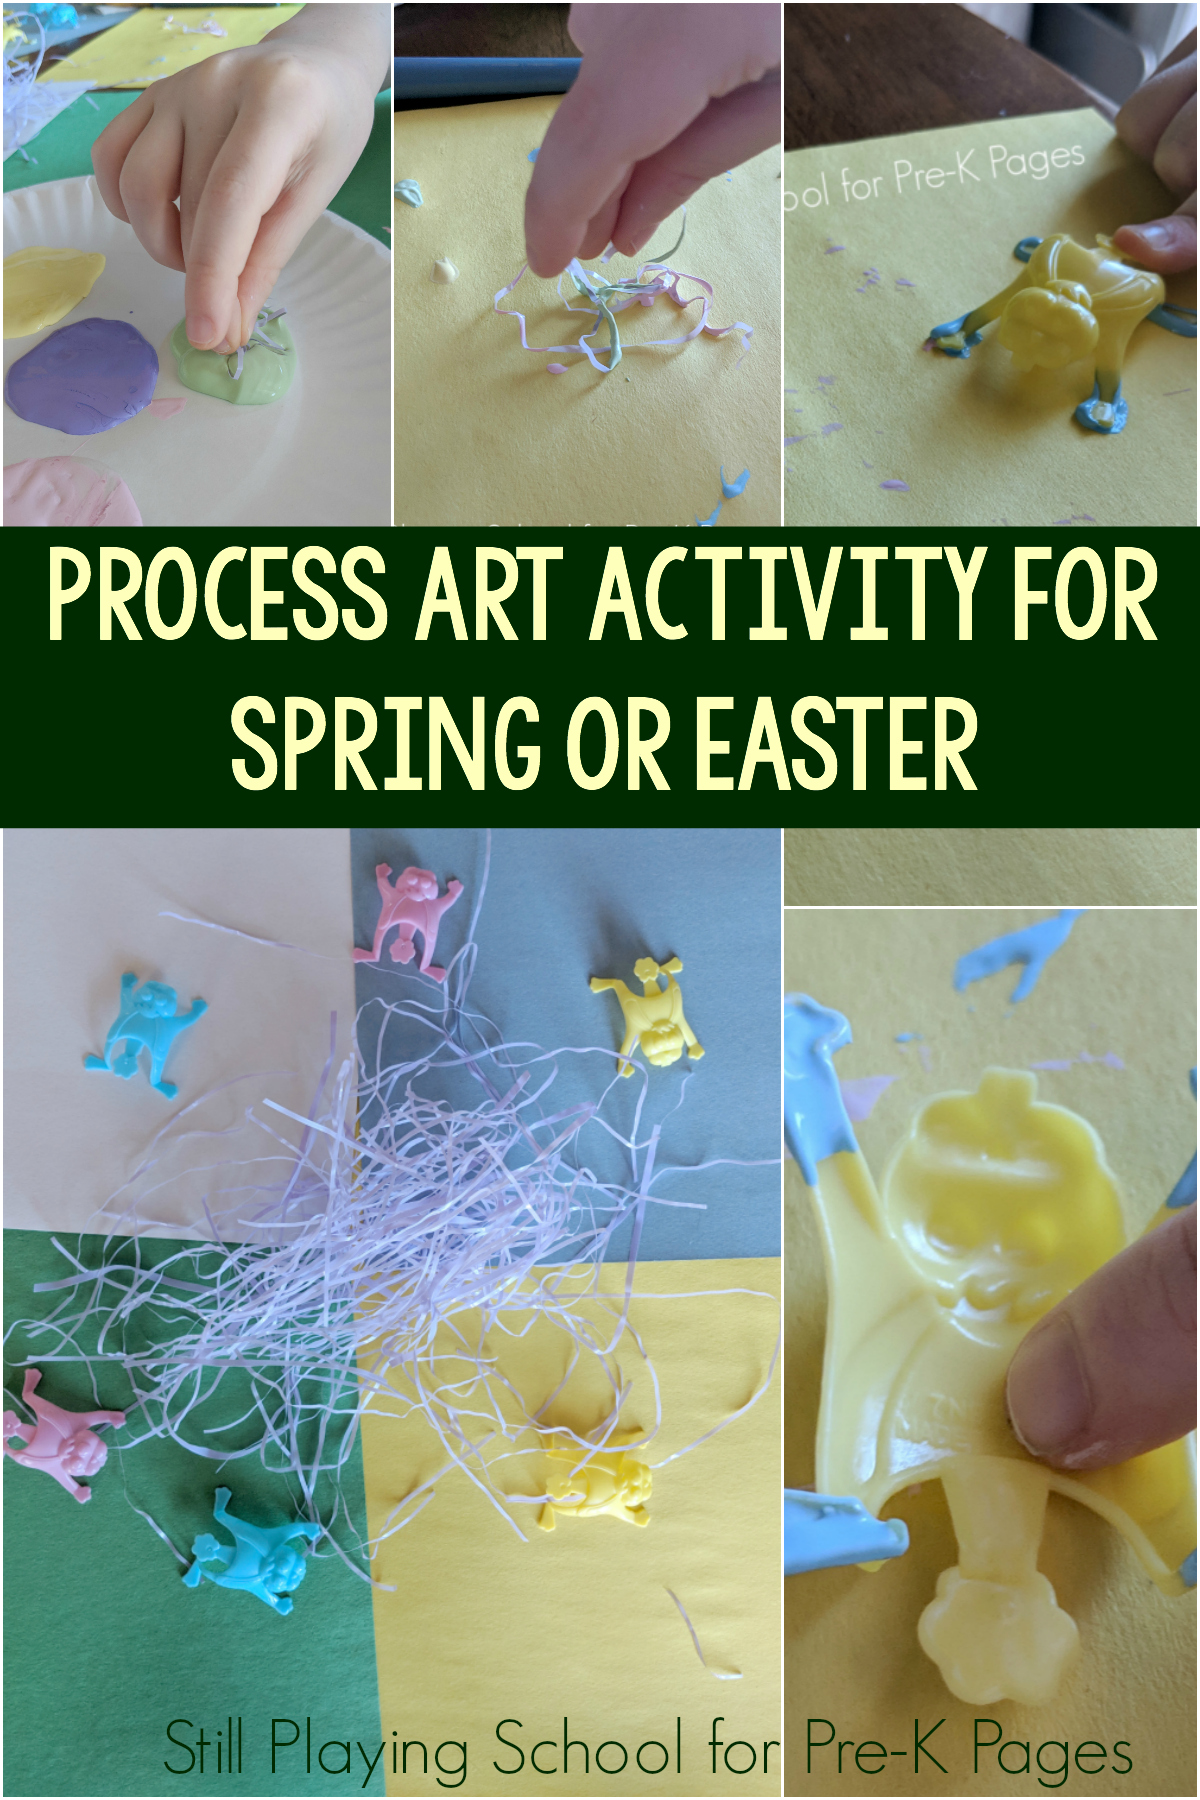 Process Art Painting Activity For Spring Or Easter